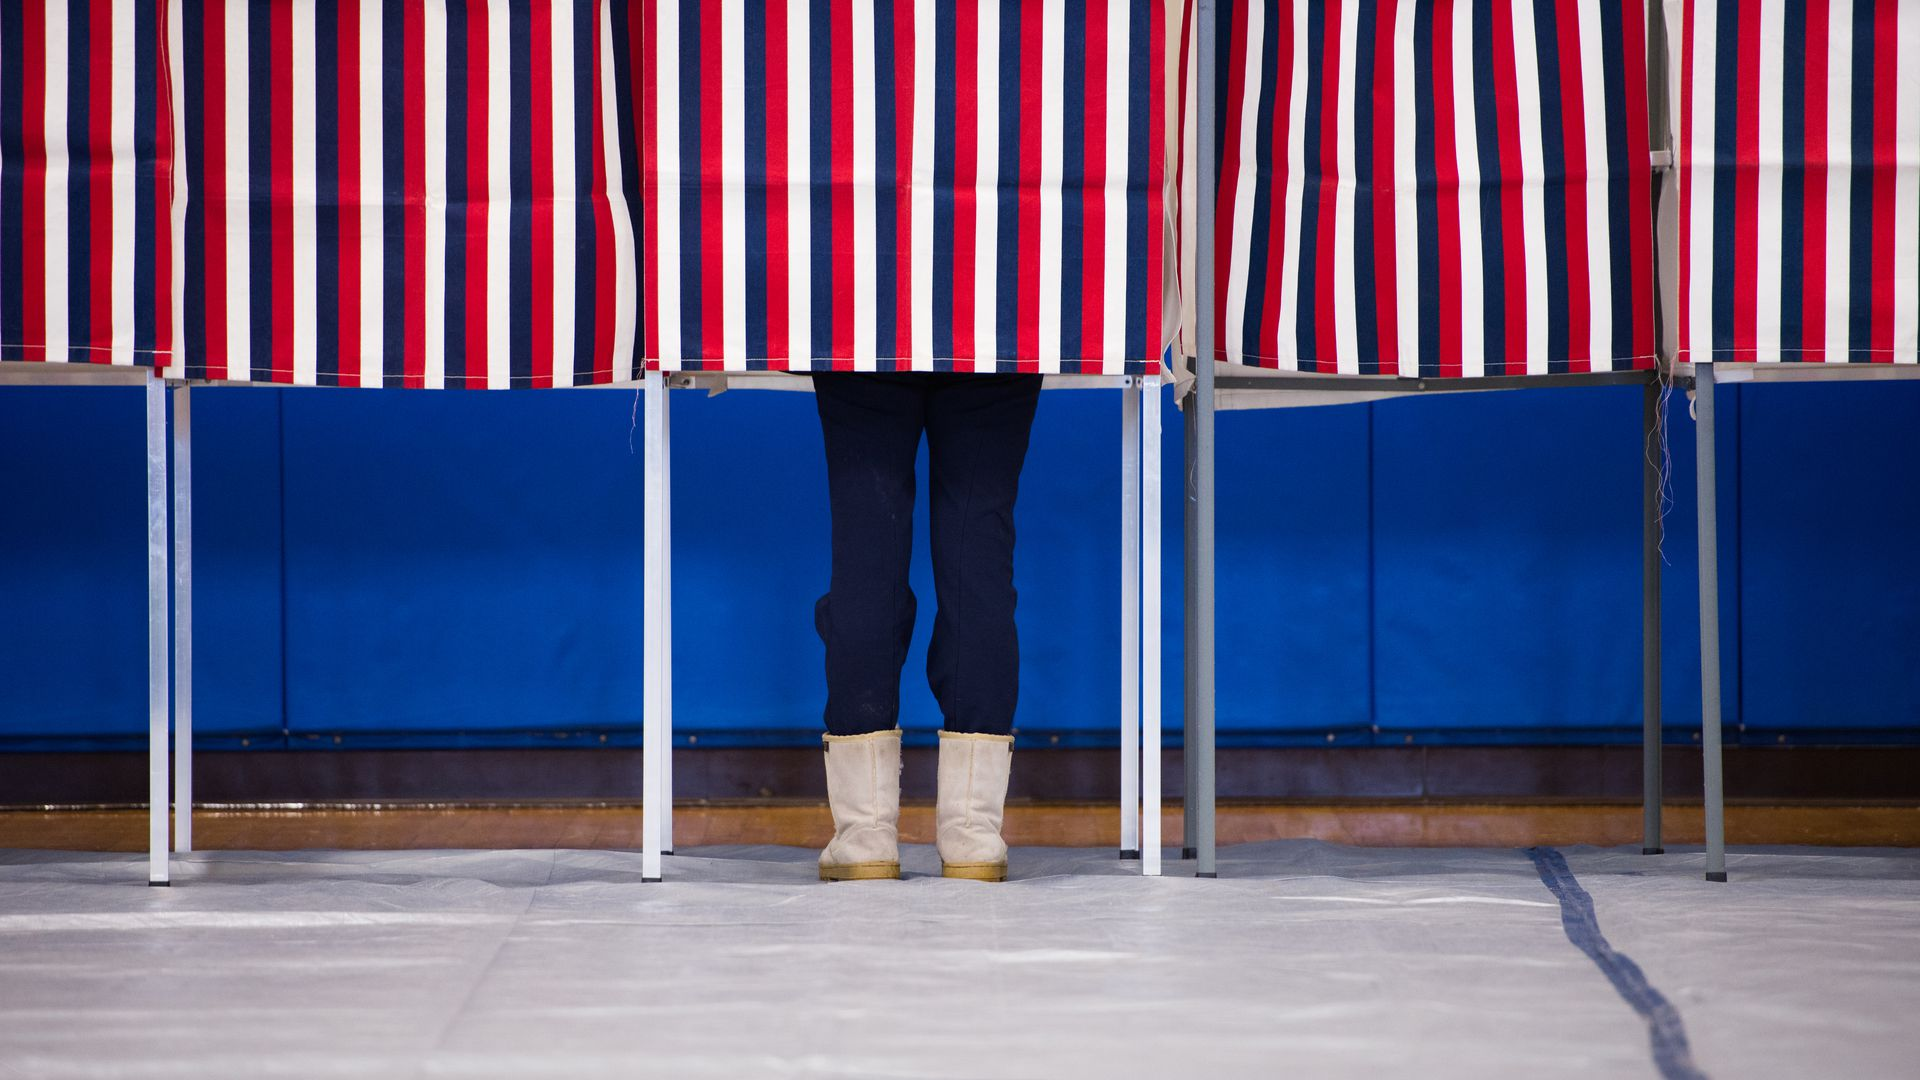 Pair of feet in blue pants underneath polling booth with red, white, blue stripes.